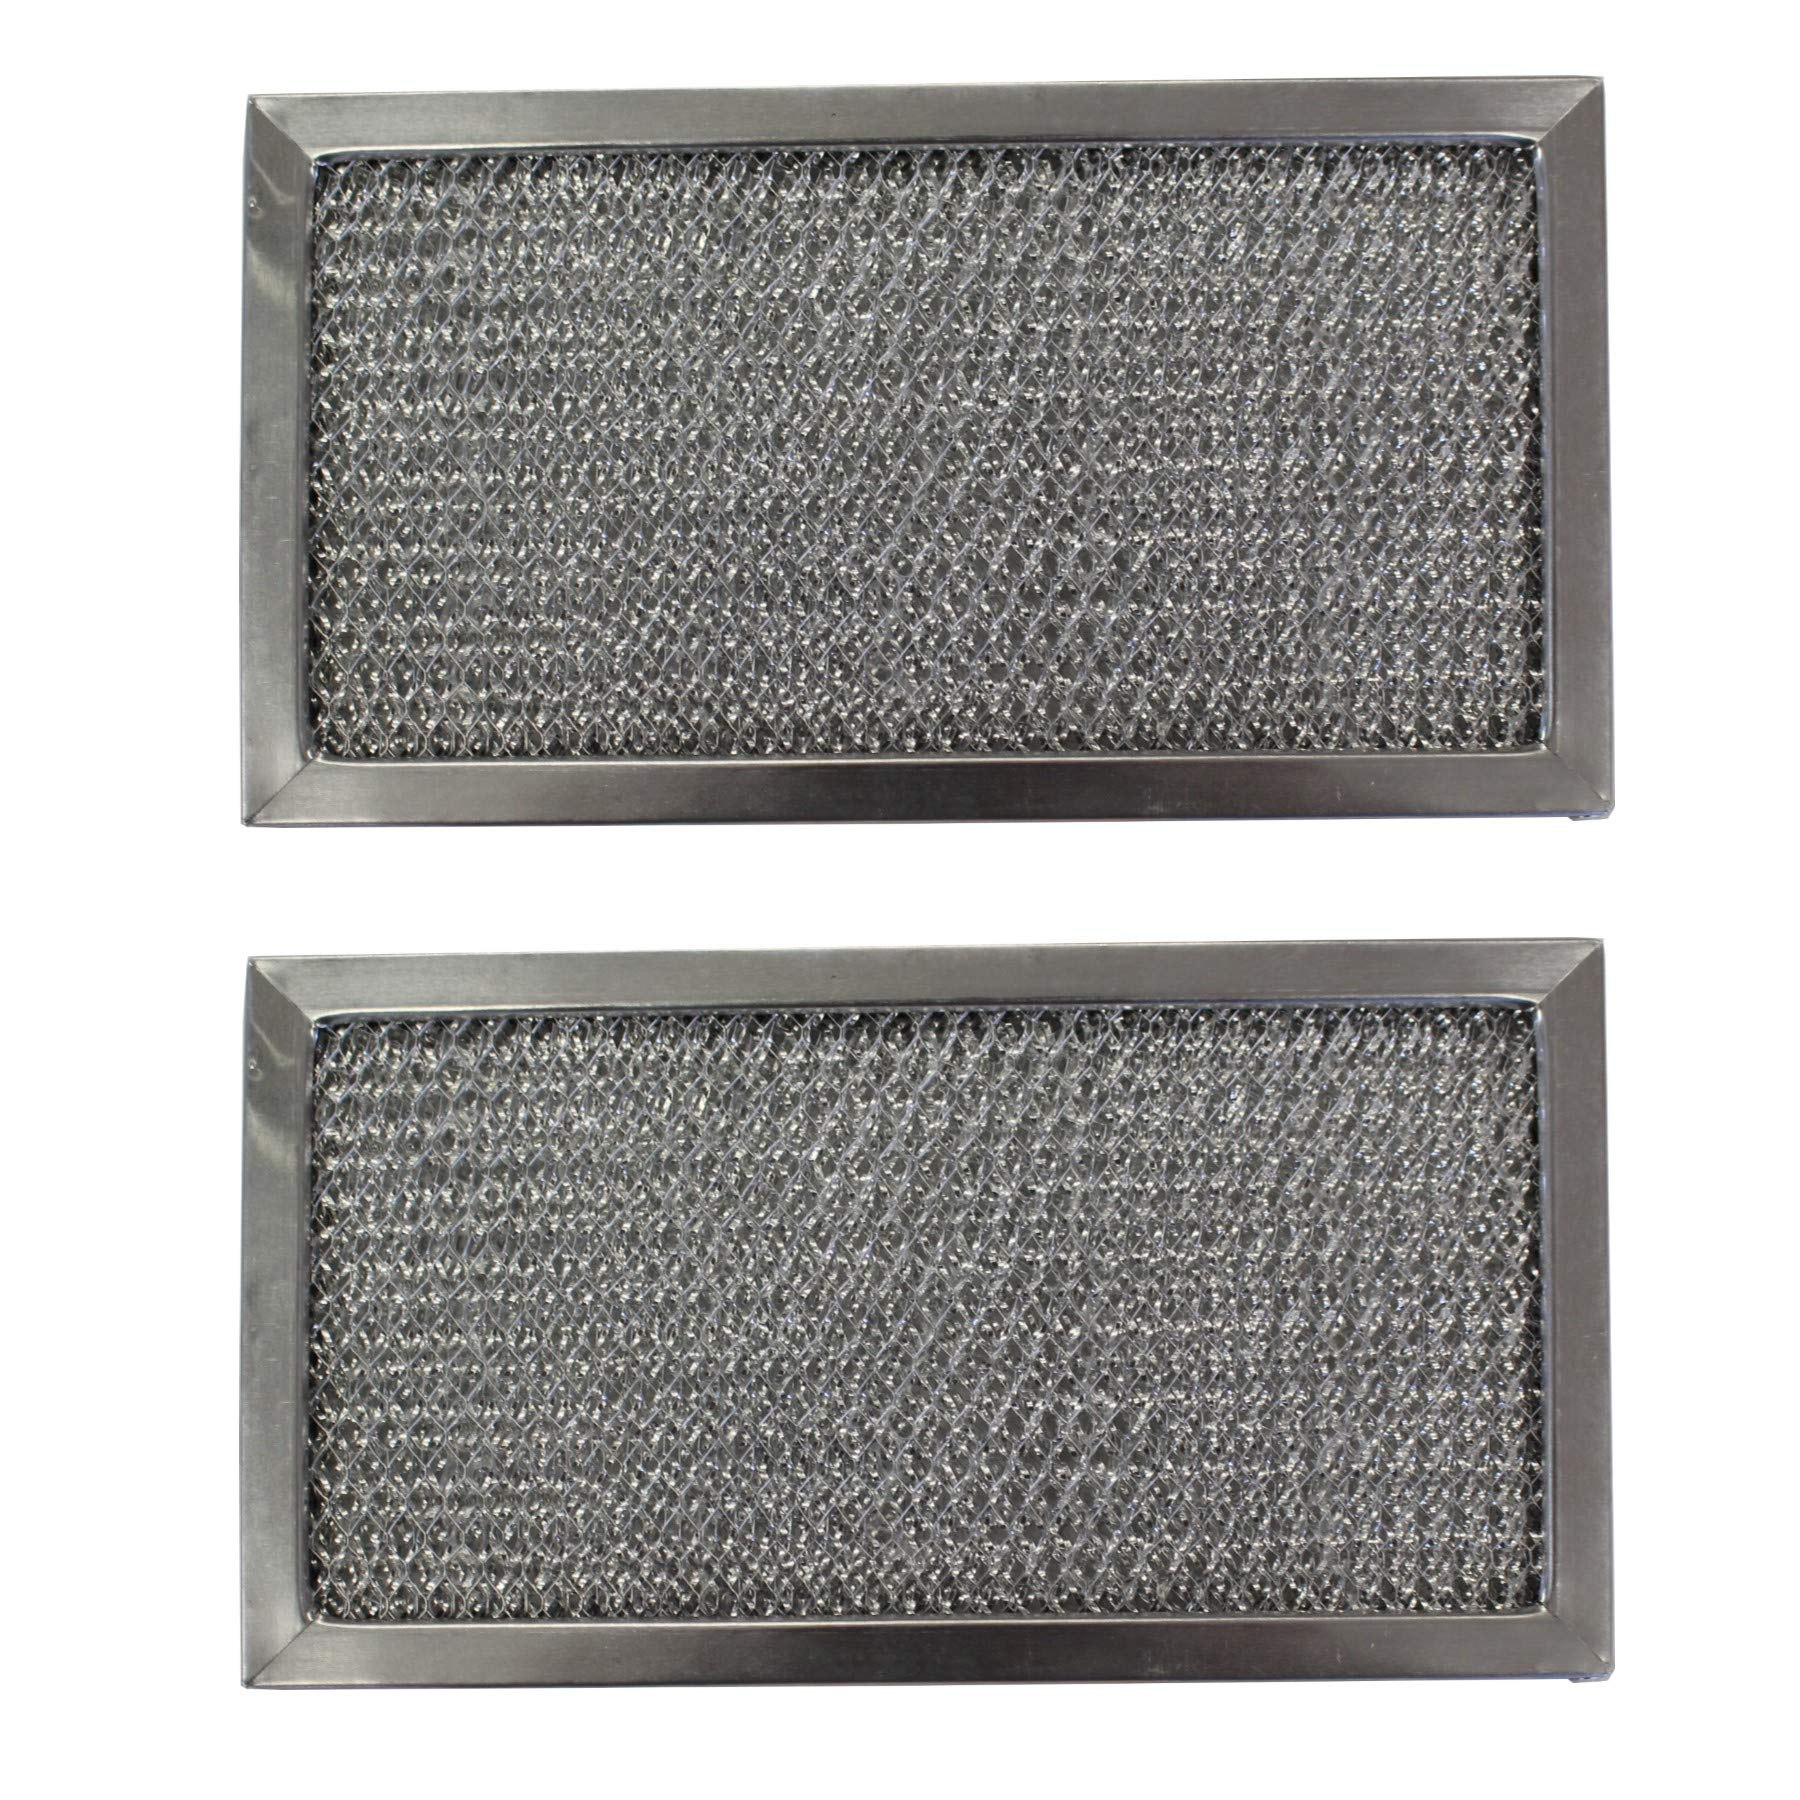 Replacement Aluminum Filters Compatible with GE WB02X1559, GE WB2X1559,G 8127,  6 1/2 x 7 3/8 x 3/8